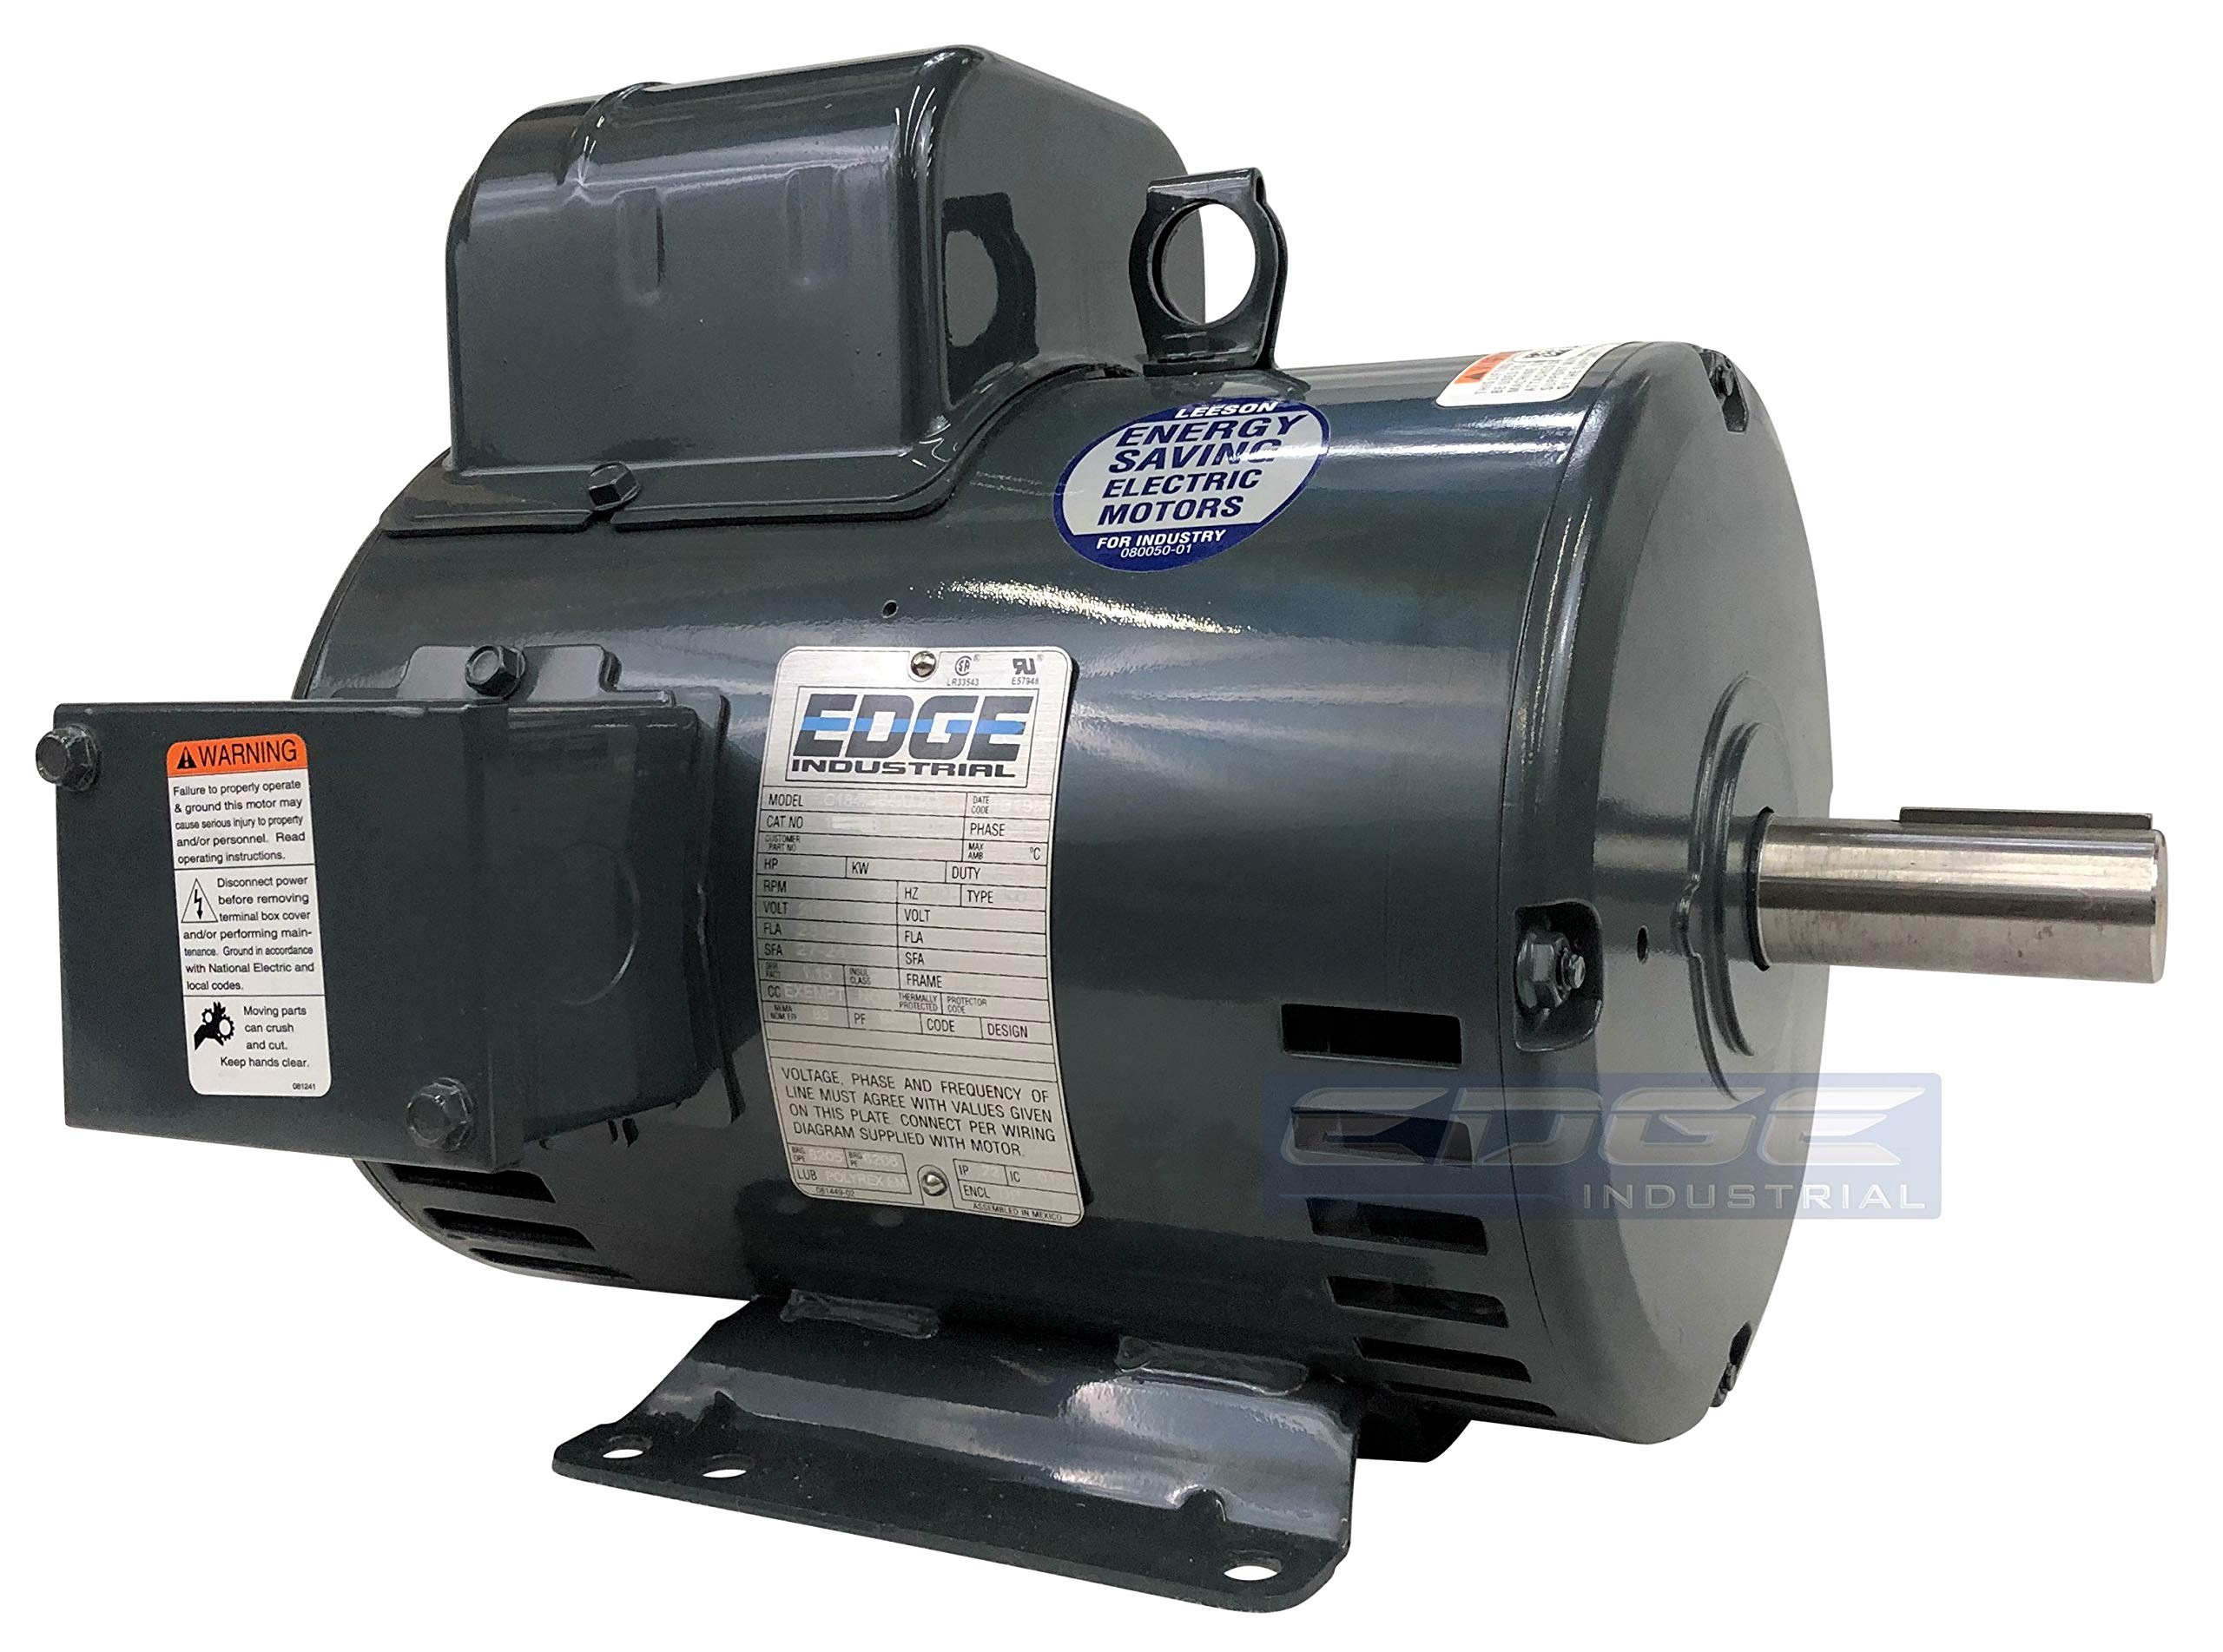 SUPER HEAVY DUTY LEESON ELECTRIC 5HP 184T COMPRESSOR DUTY MOTOR, 1725 RPM, 230VAC, 1 1/8'' SHAFT DIAMETER, REVERSIBLE ROTATION,